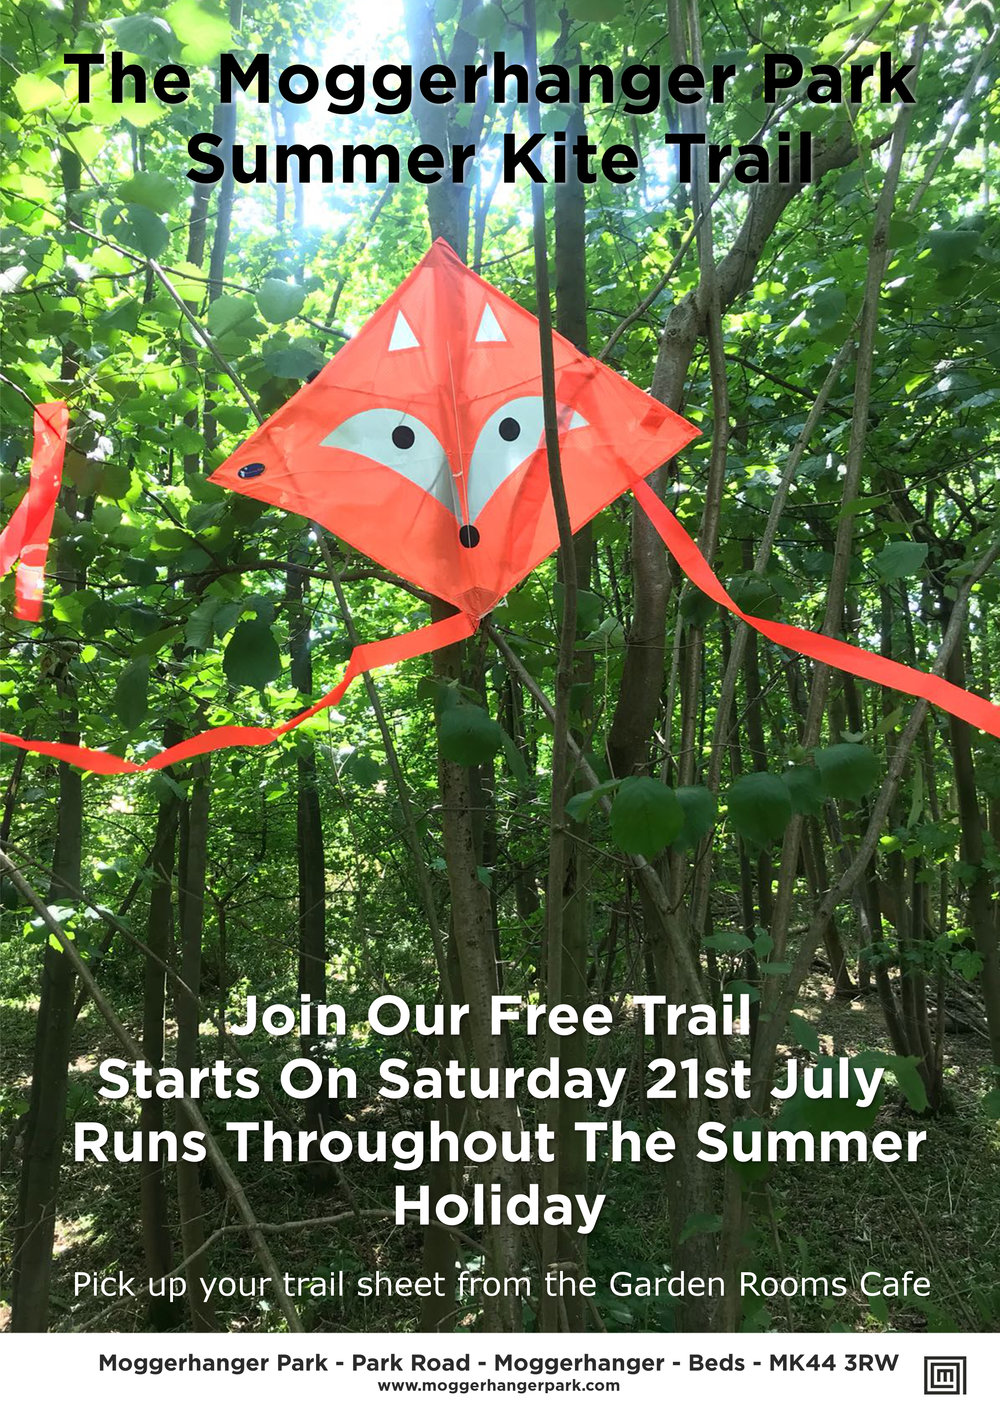 Why not combine your session with our Free Kite Trail which runs throughout the Summer Holiday -